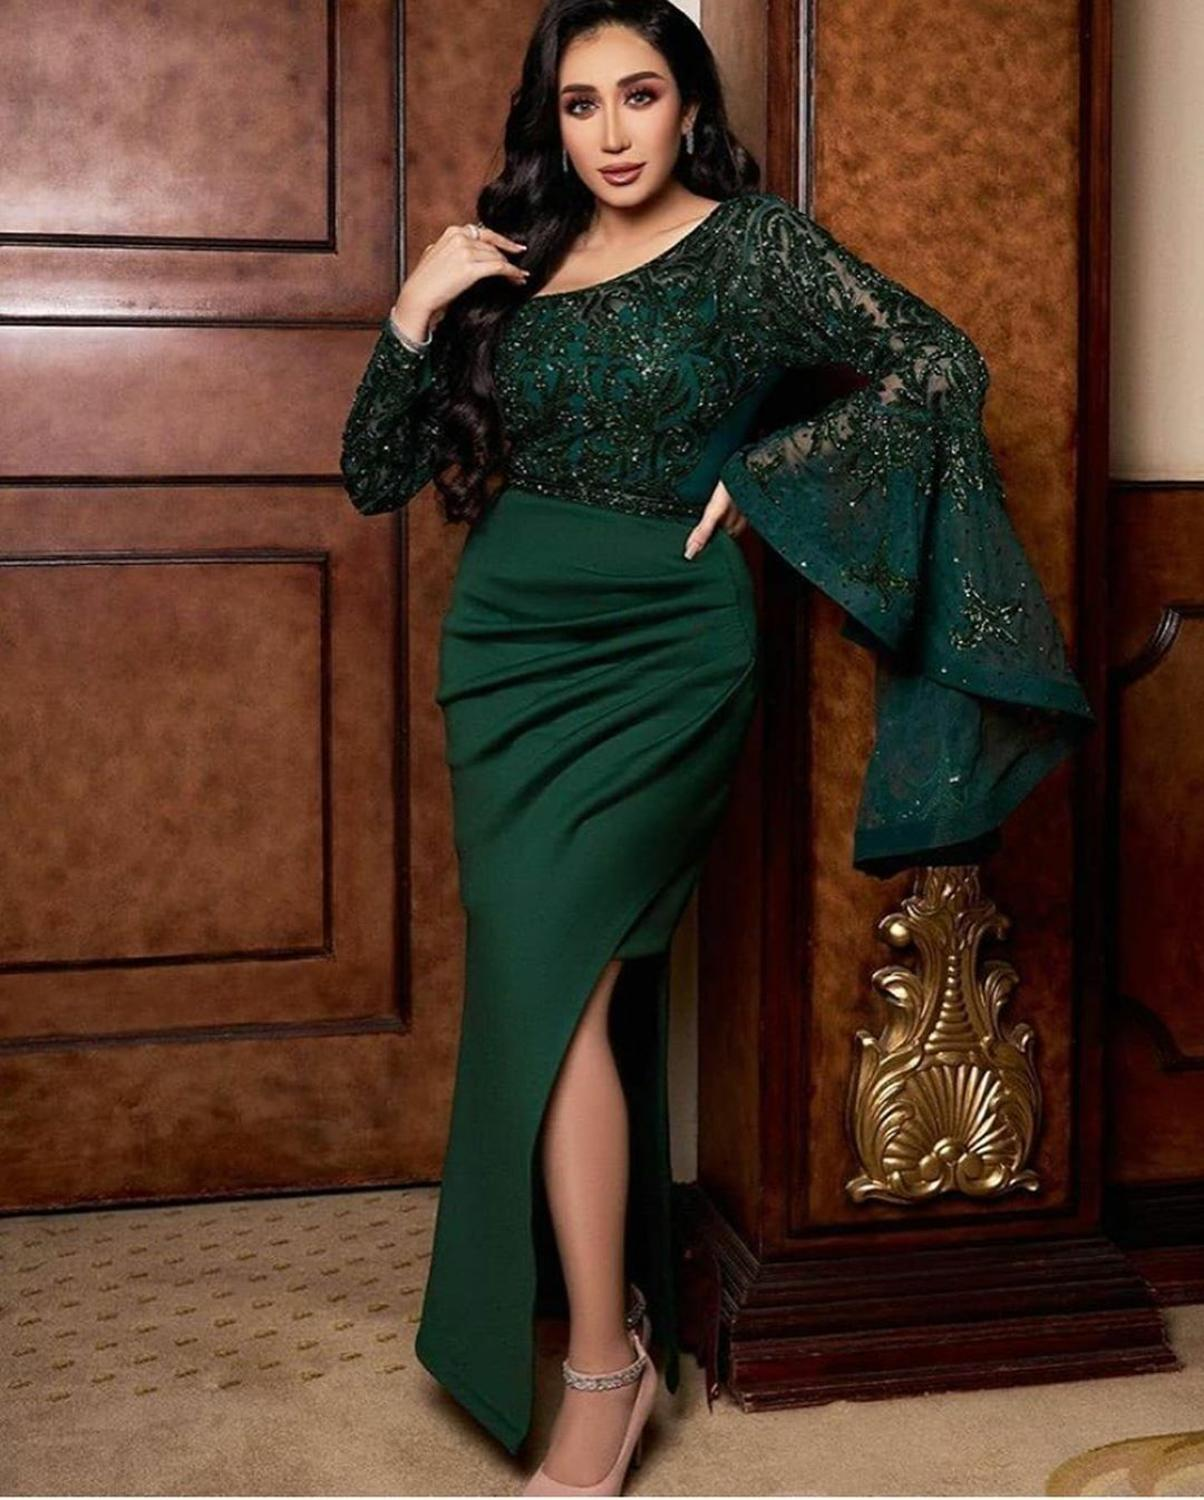 Prom Dresses 2020 Mermaid For Women Dubai Turkey Sequined Formal Night Evening Gown Sexy Split Luxury Long Sleeve